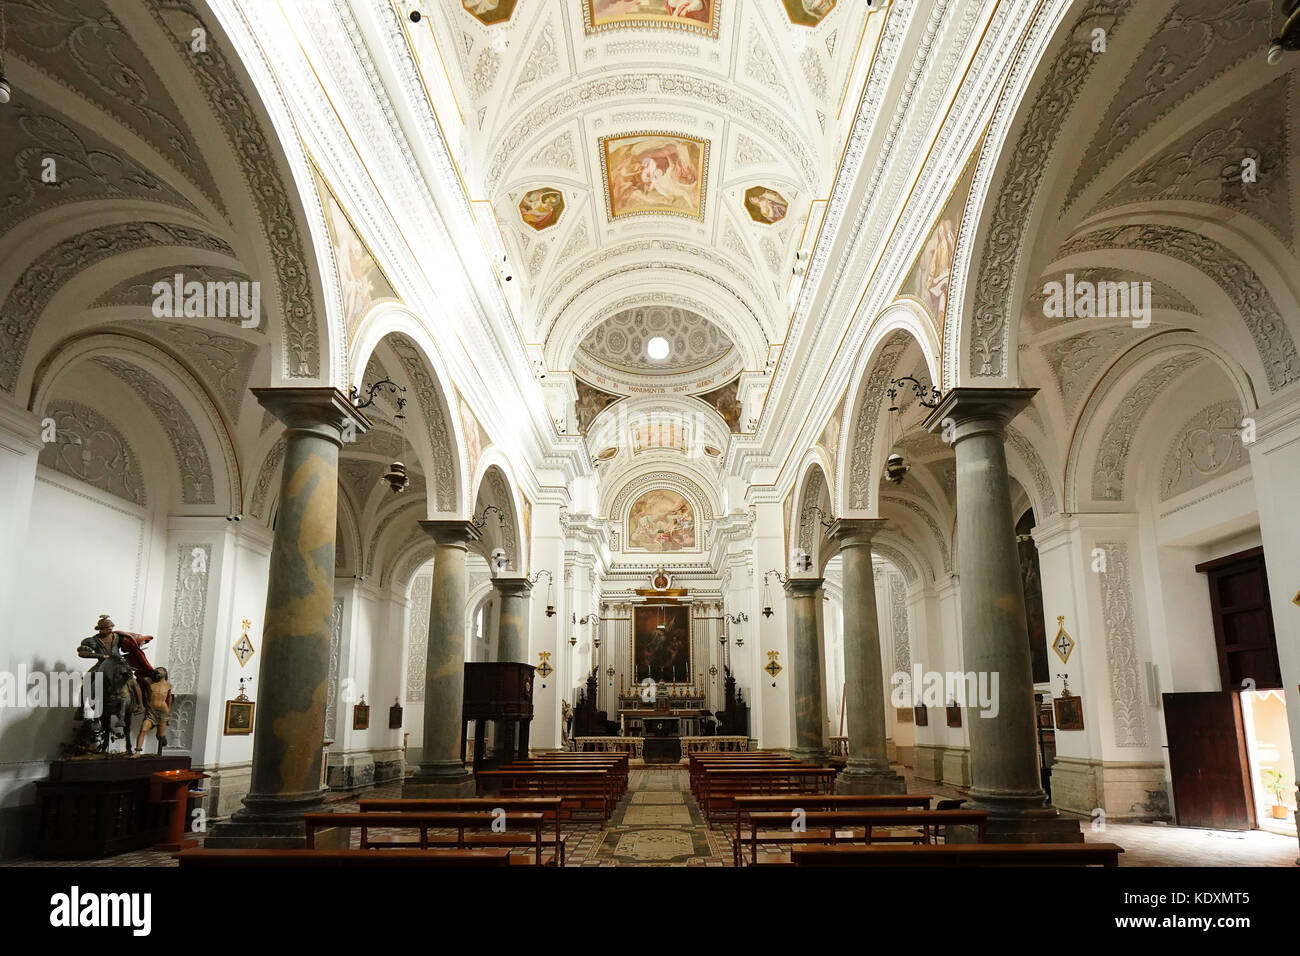 A view inside the San Martino church in the hill-top town of Erice. From a series of travel photos in Sicily, Italy. - Stock Image